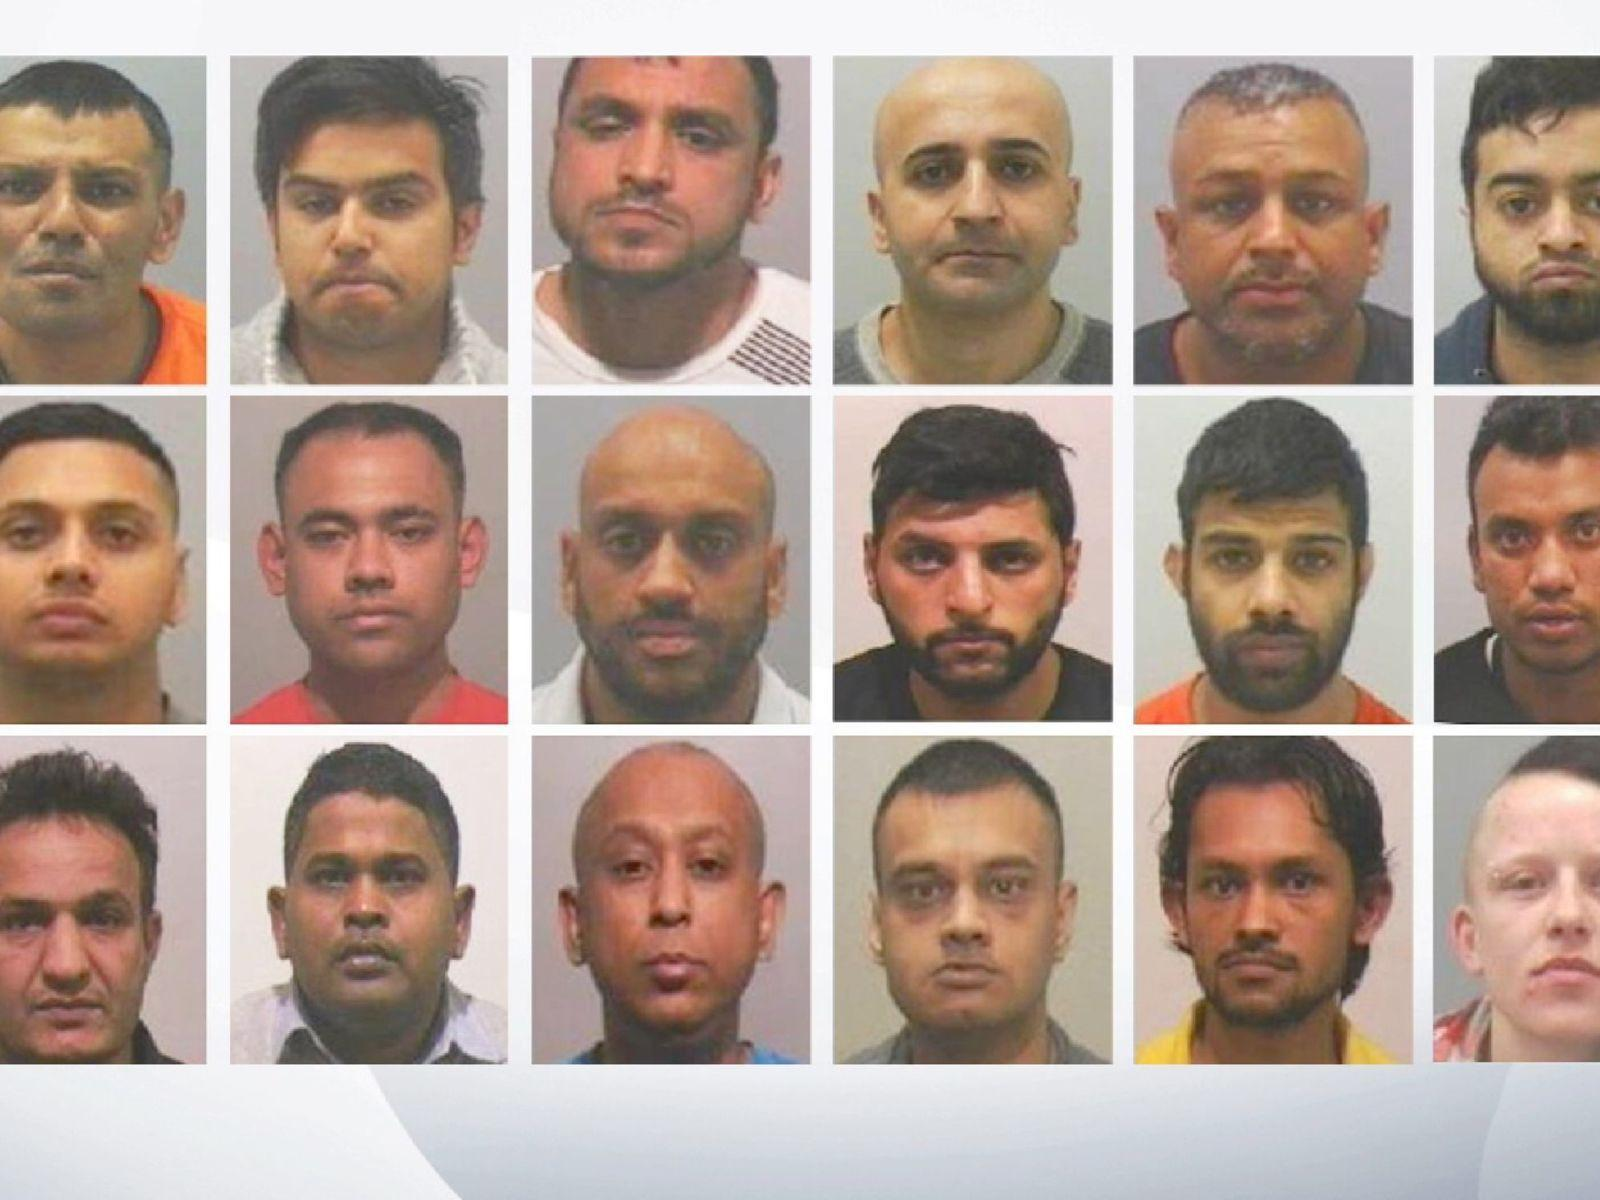 Hundreds of girls and vulnerable women abused 'extensively' by Asian grooming gangs